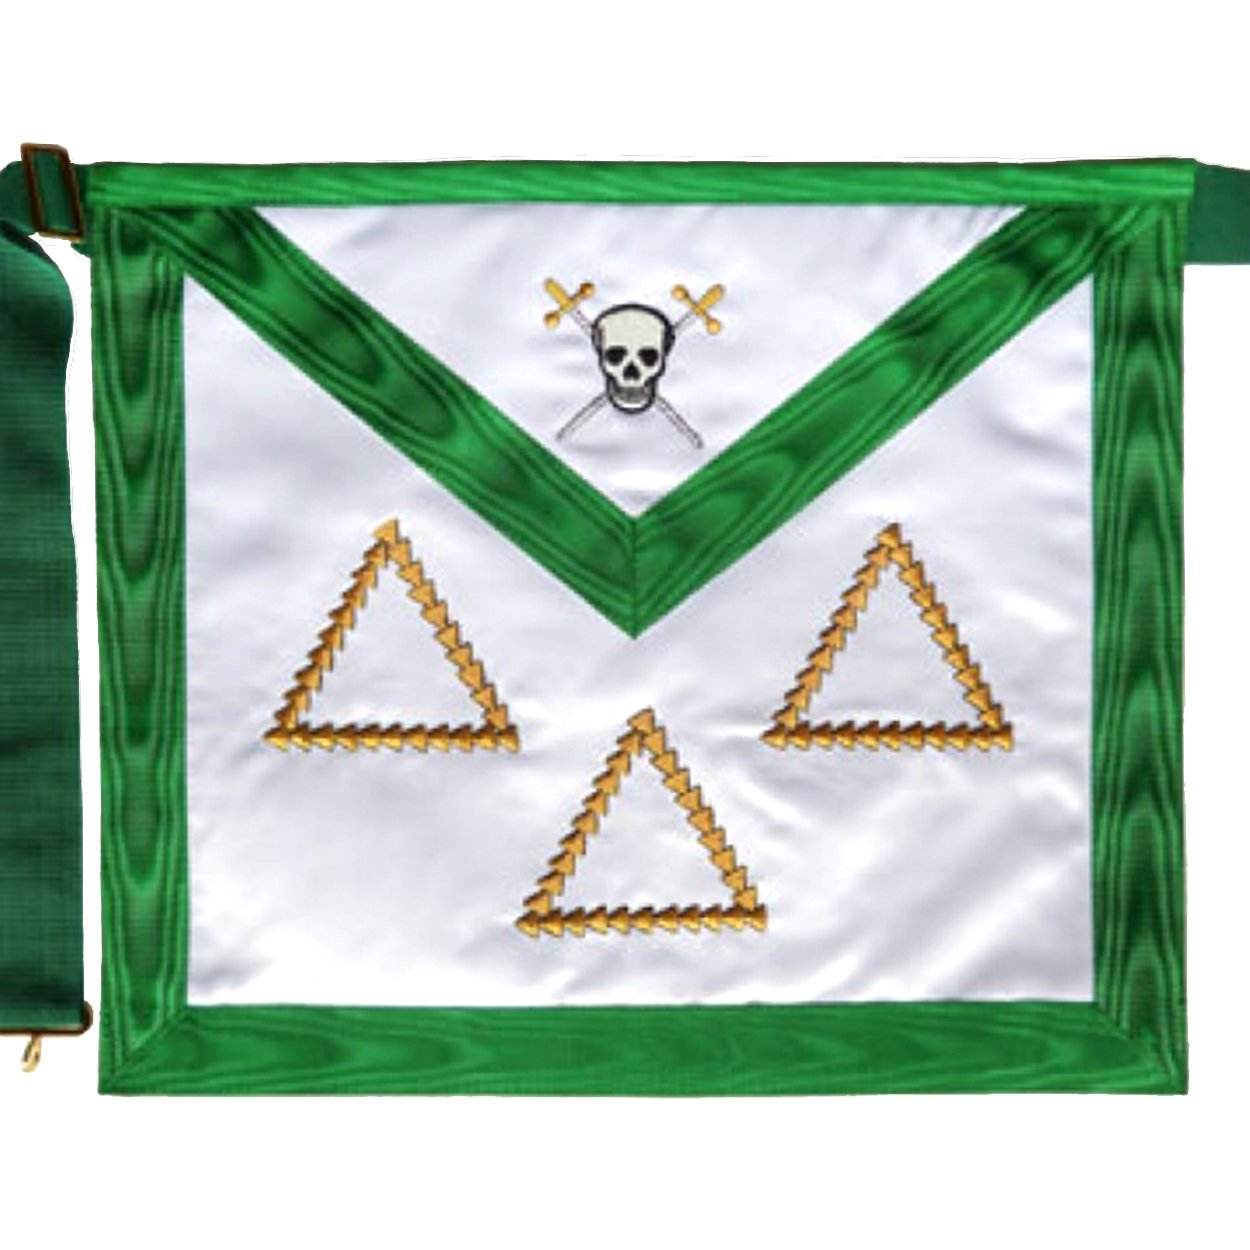 Masonic Scottish Rite Satin apron - AASR - 15th degree - Bricks Masons